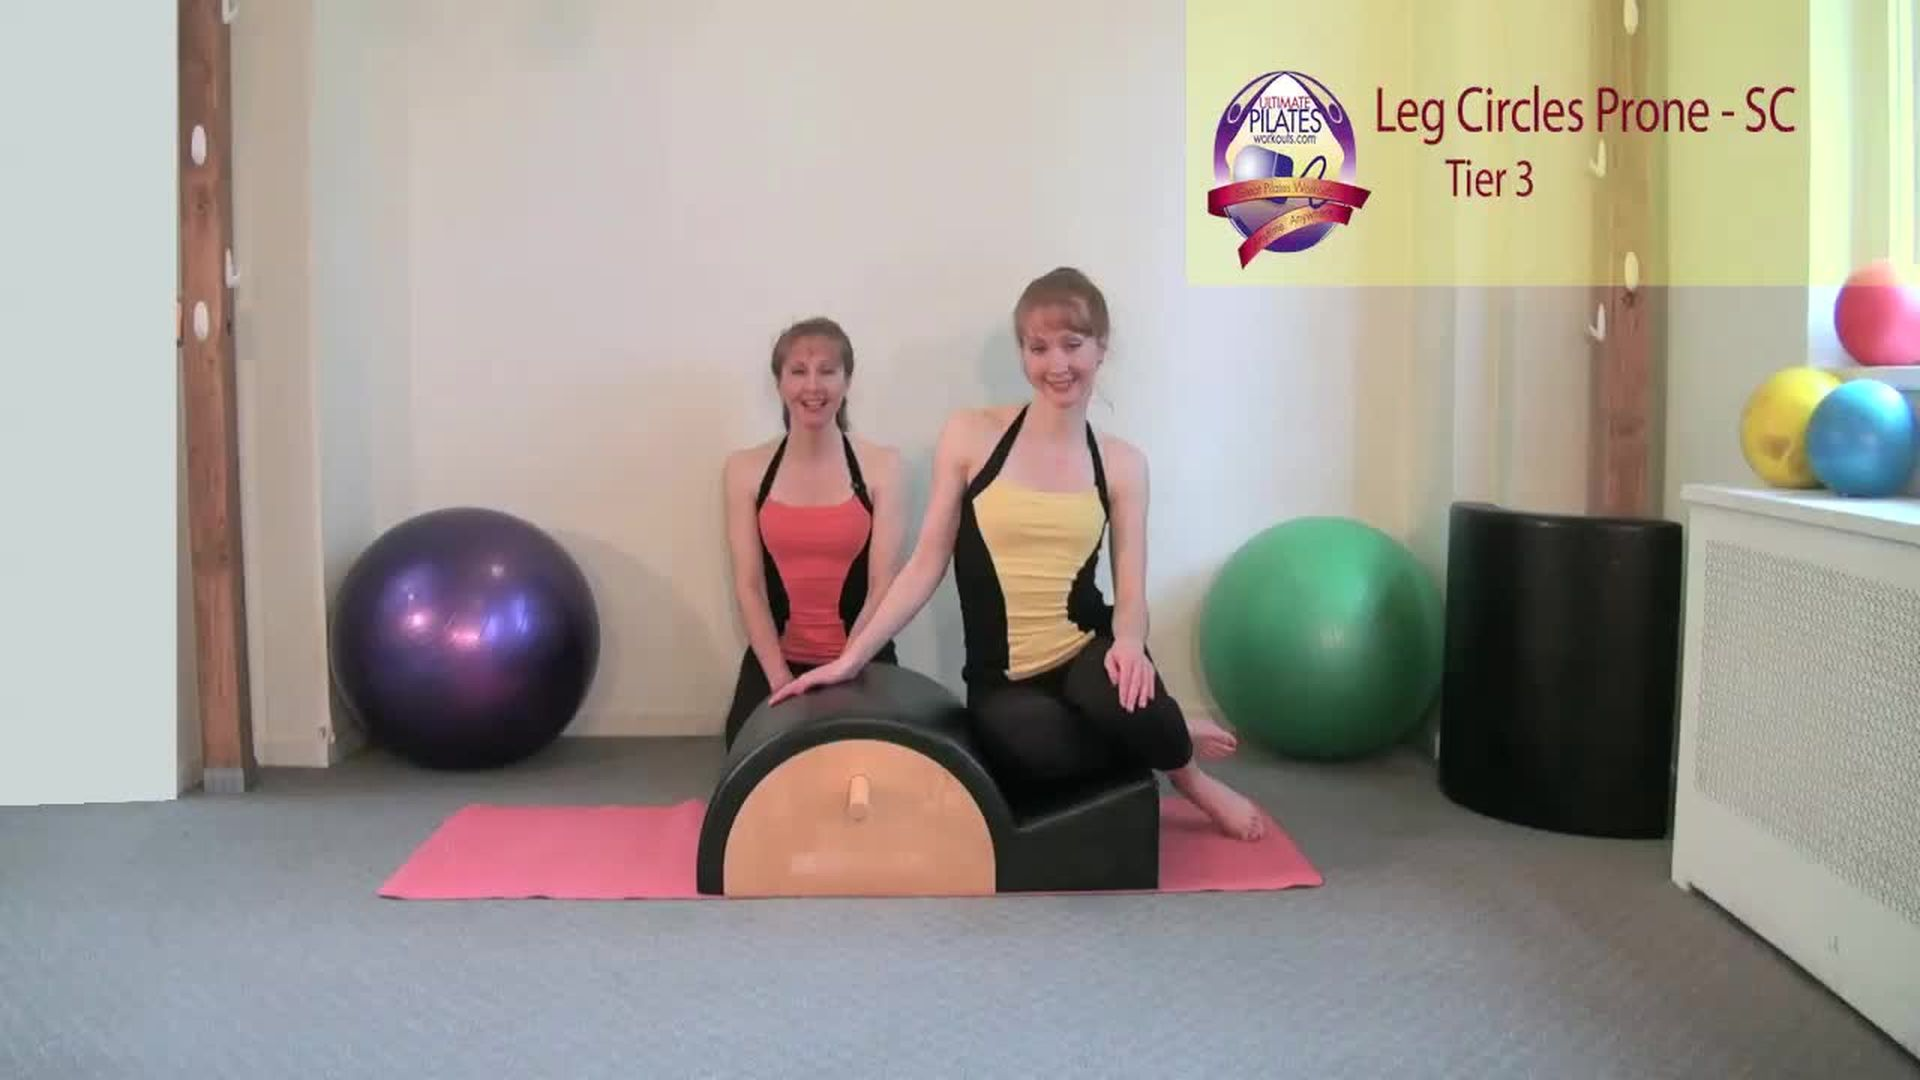 Leg Circles Prone on the Spine Corrector